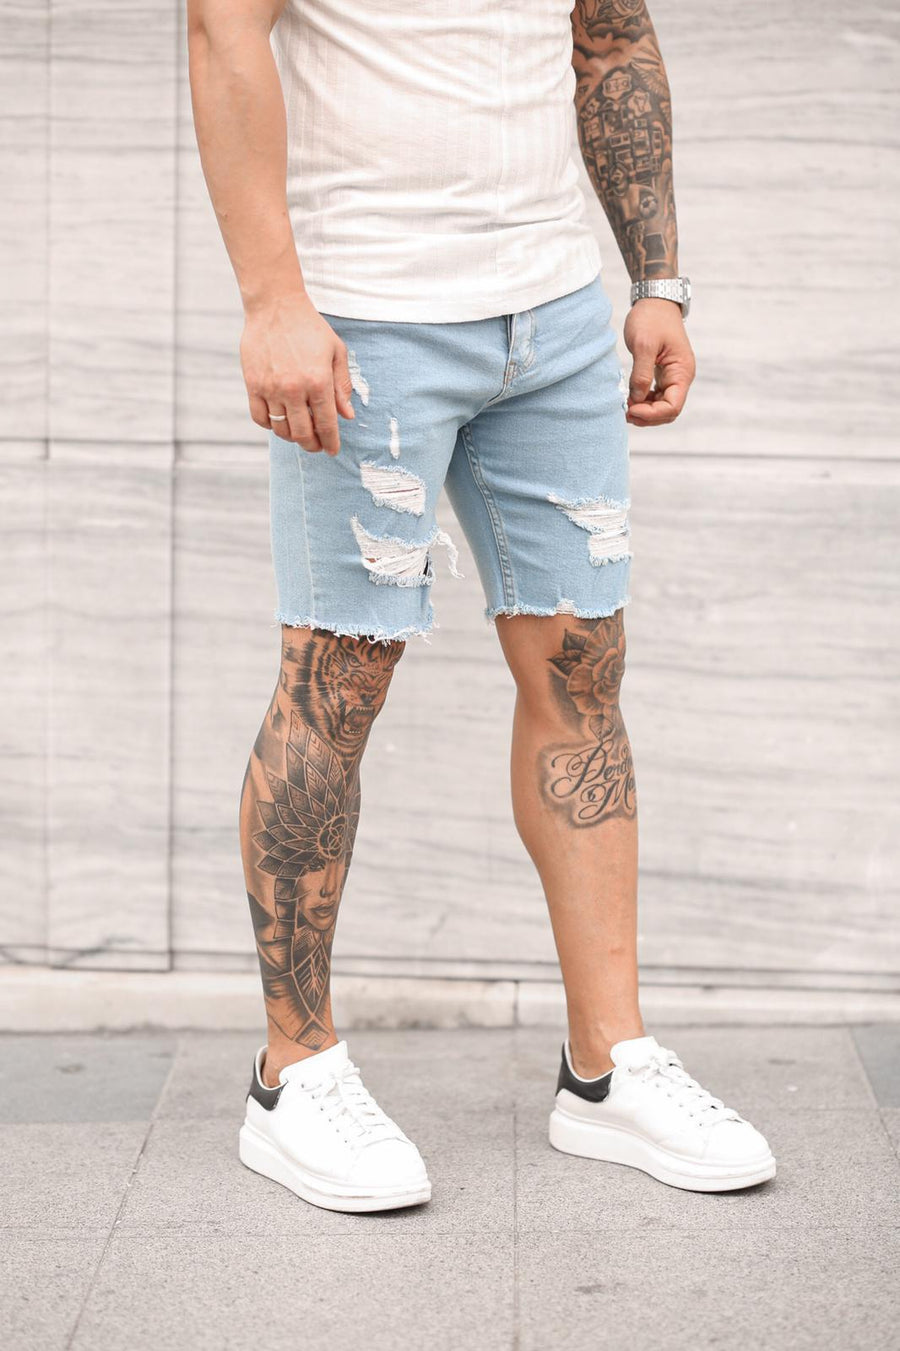 Sneakerjeans Light Blue Ripped Jeans Short DP35